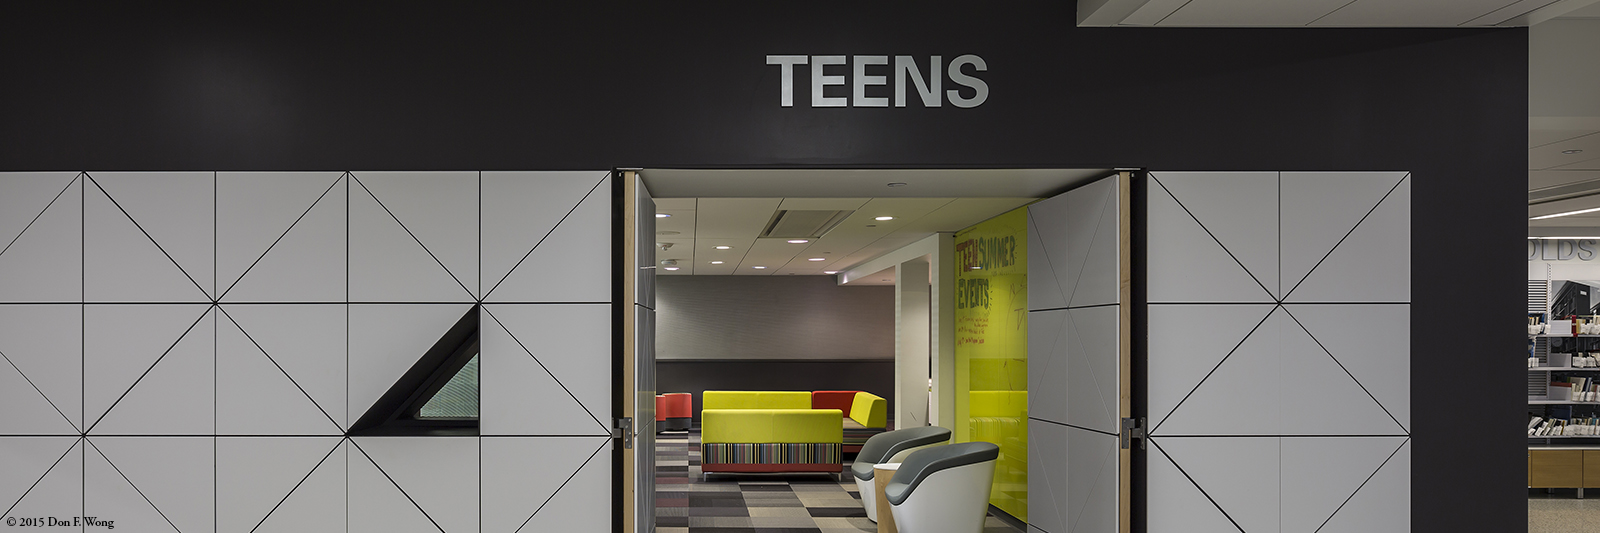 Teen space entrance